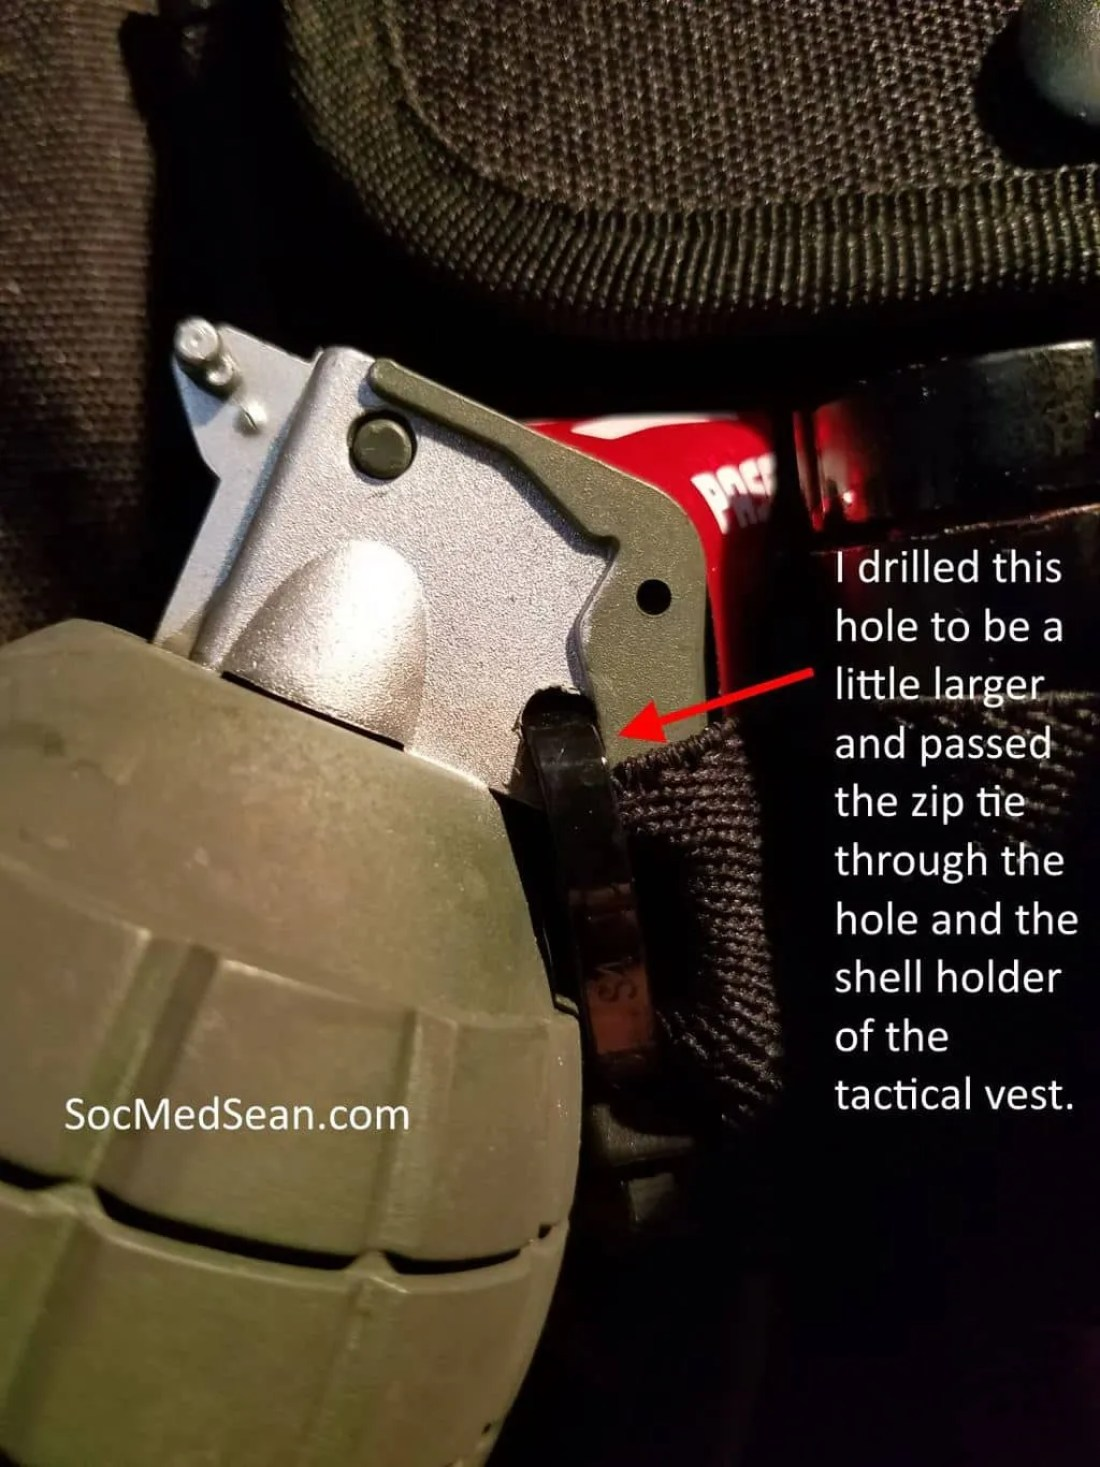 The grenades are secured to the tactical vest with a zip tie